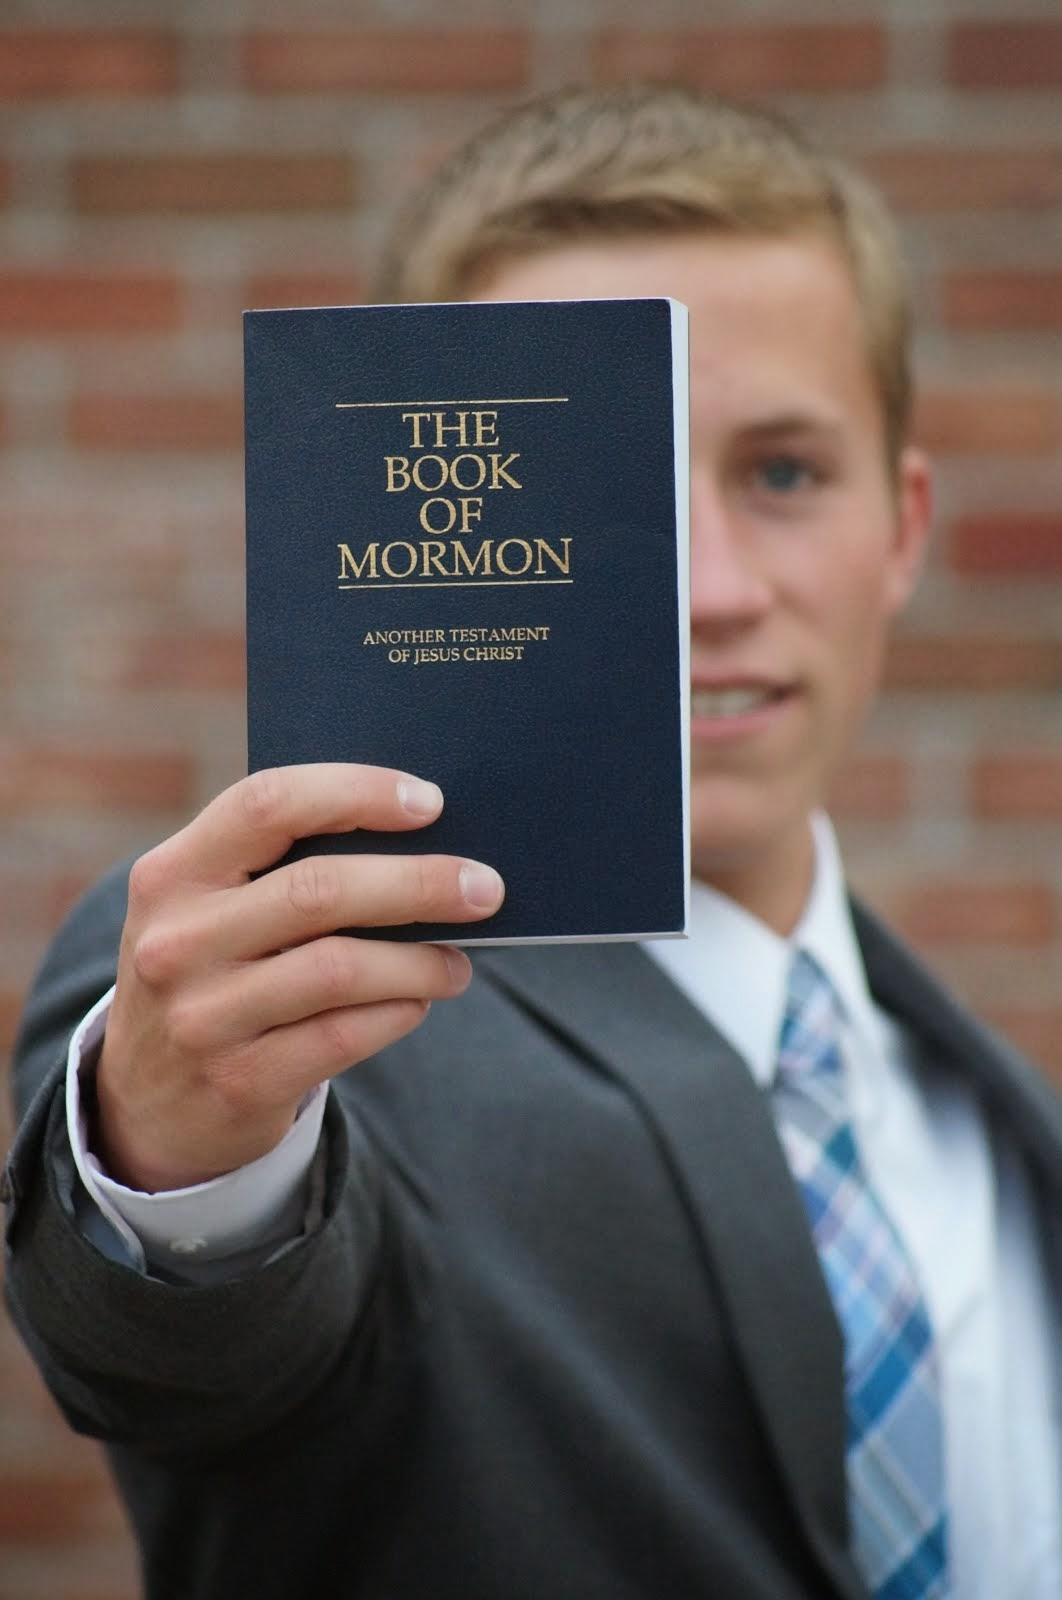 Sharing the Book of Mormon